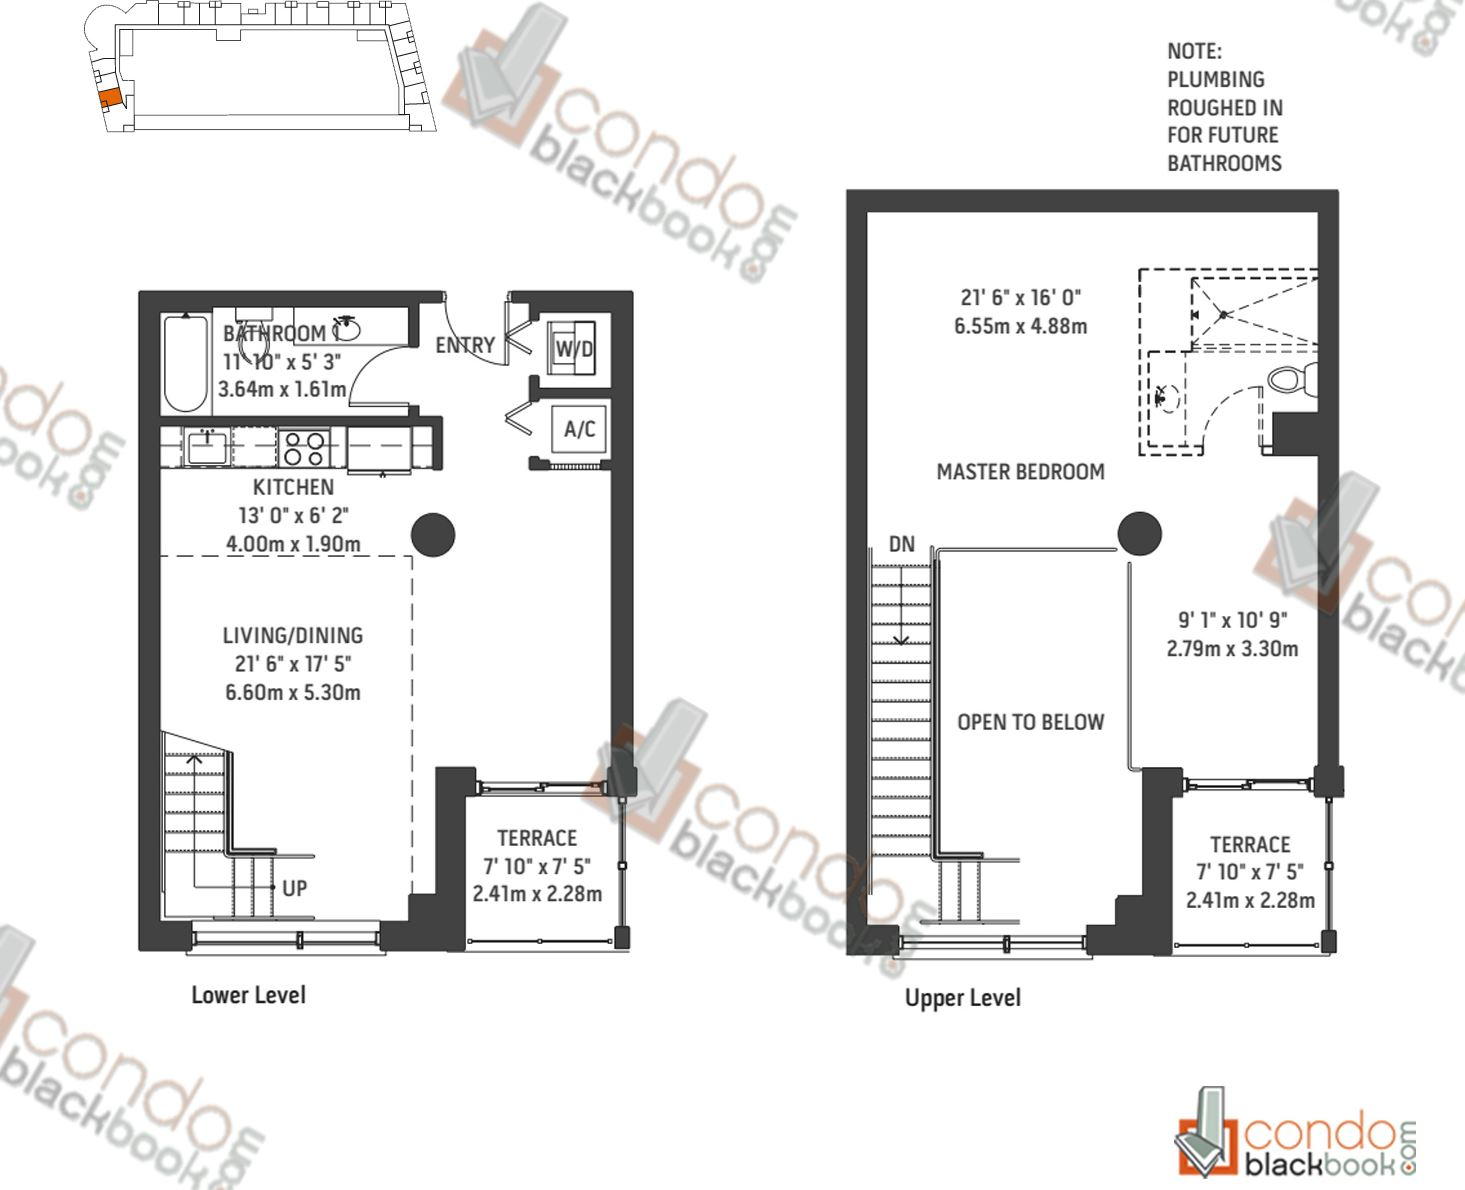 Floor plan for Midblock Condominium Midtown Miami, model Unit L2, line 02, 0/1 bedrooms, 1,250 sq ft